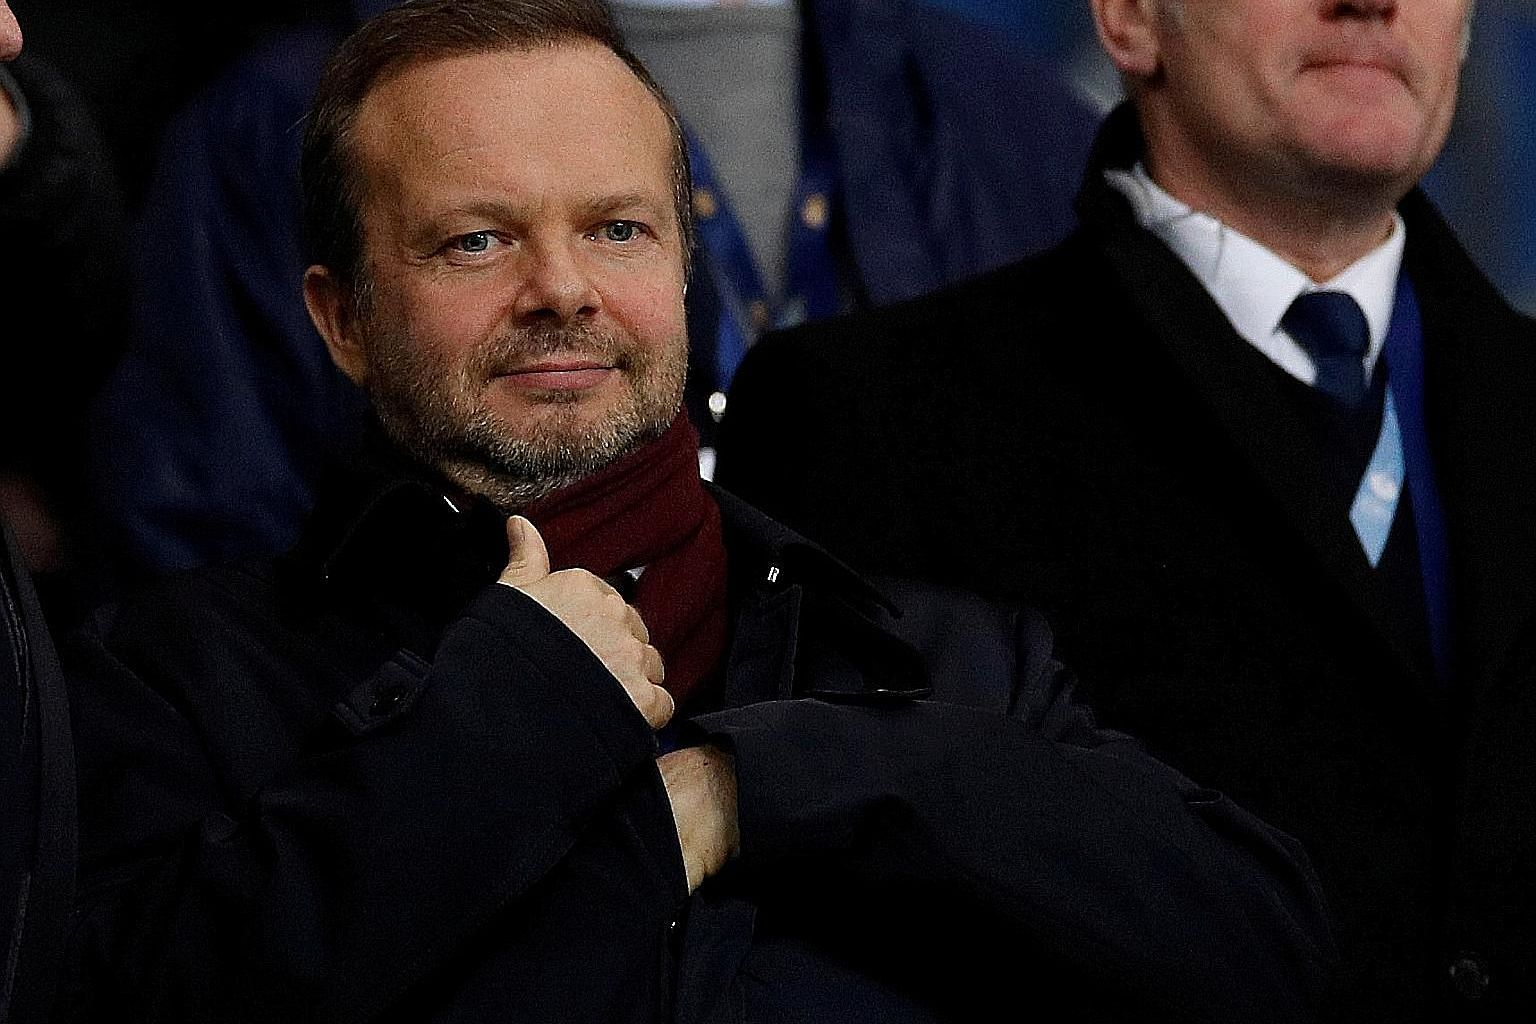 Manchester United can draw on cash reserves of £90 million and £150 million in credit to tide them over the Covid-19 uncertainty, says executive vice-chairman Ed Woodward.